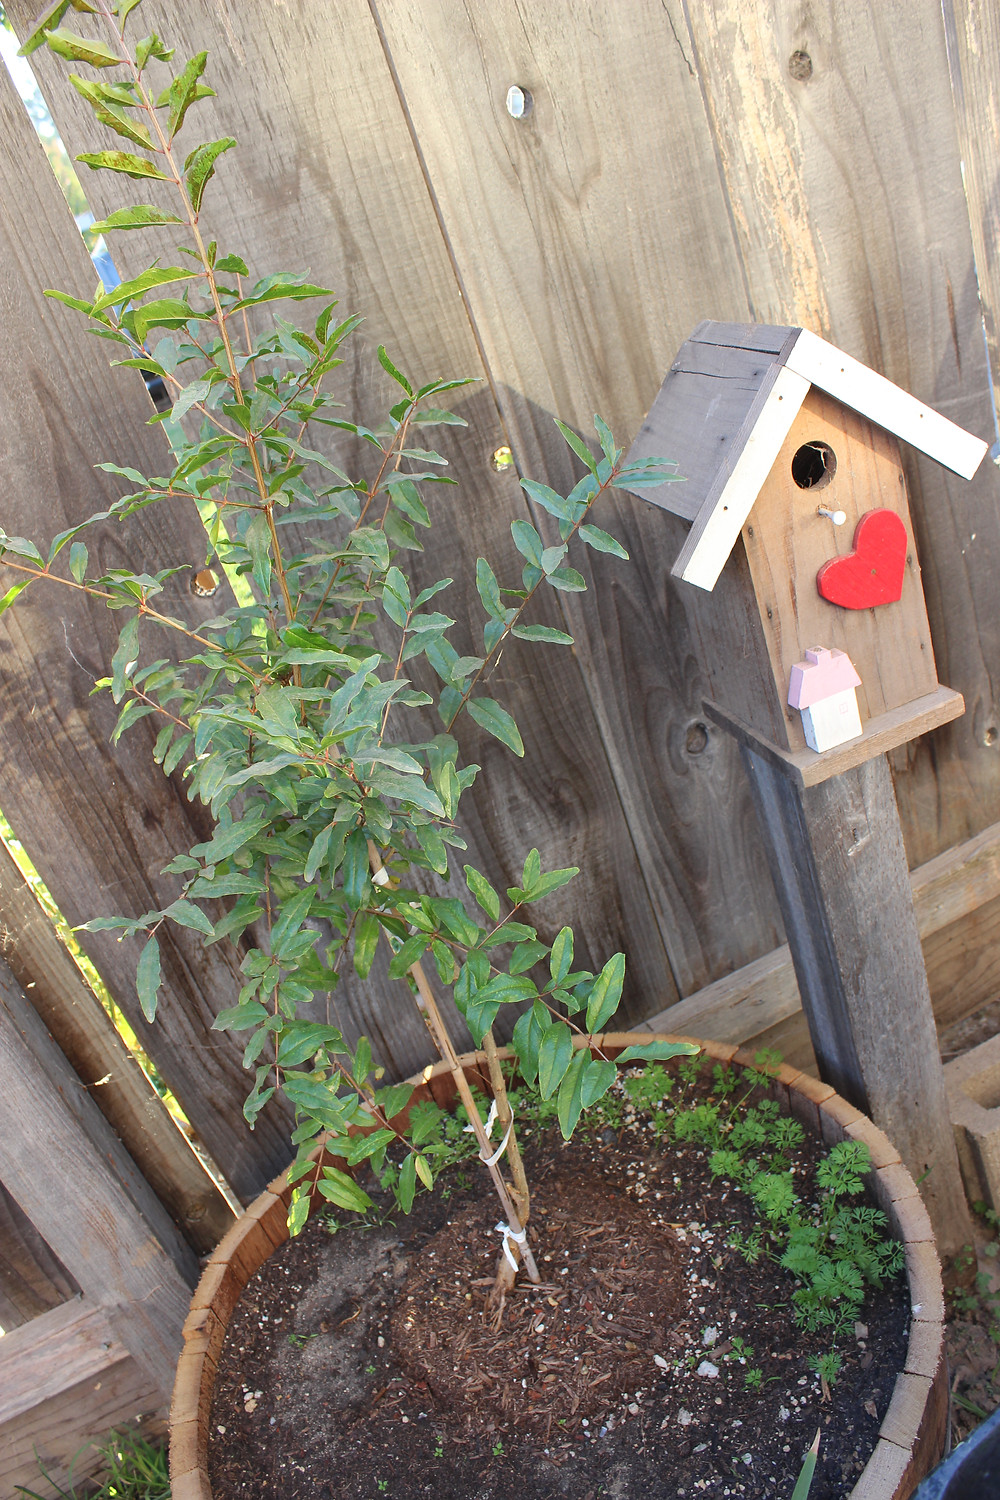 Small pomegranate tree about 4 feet tall, carrots sprouted beneath and my loved bird house accent.